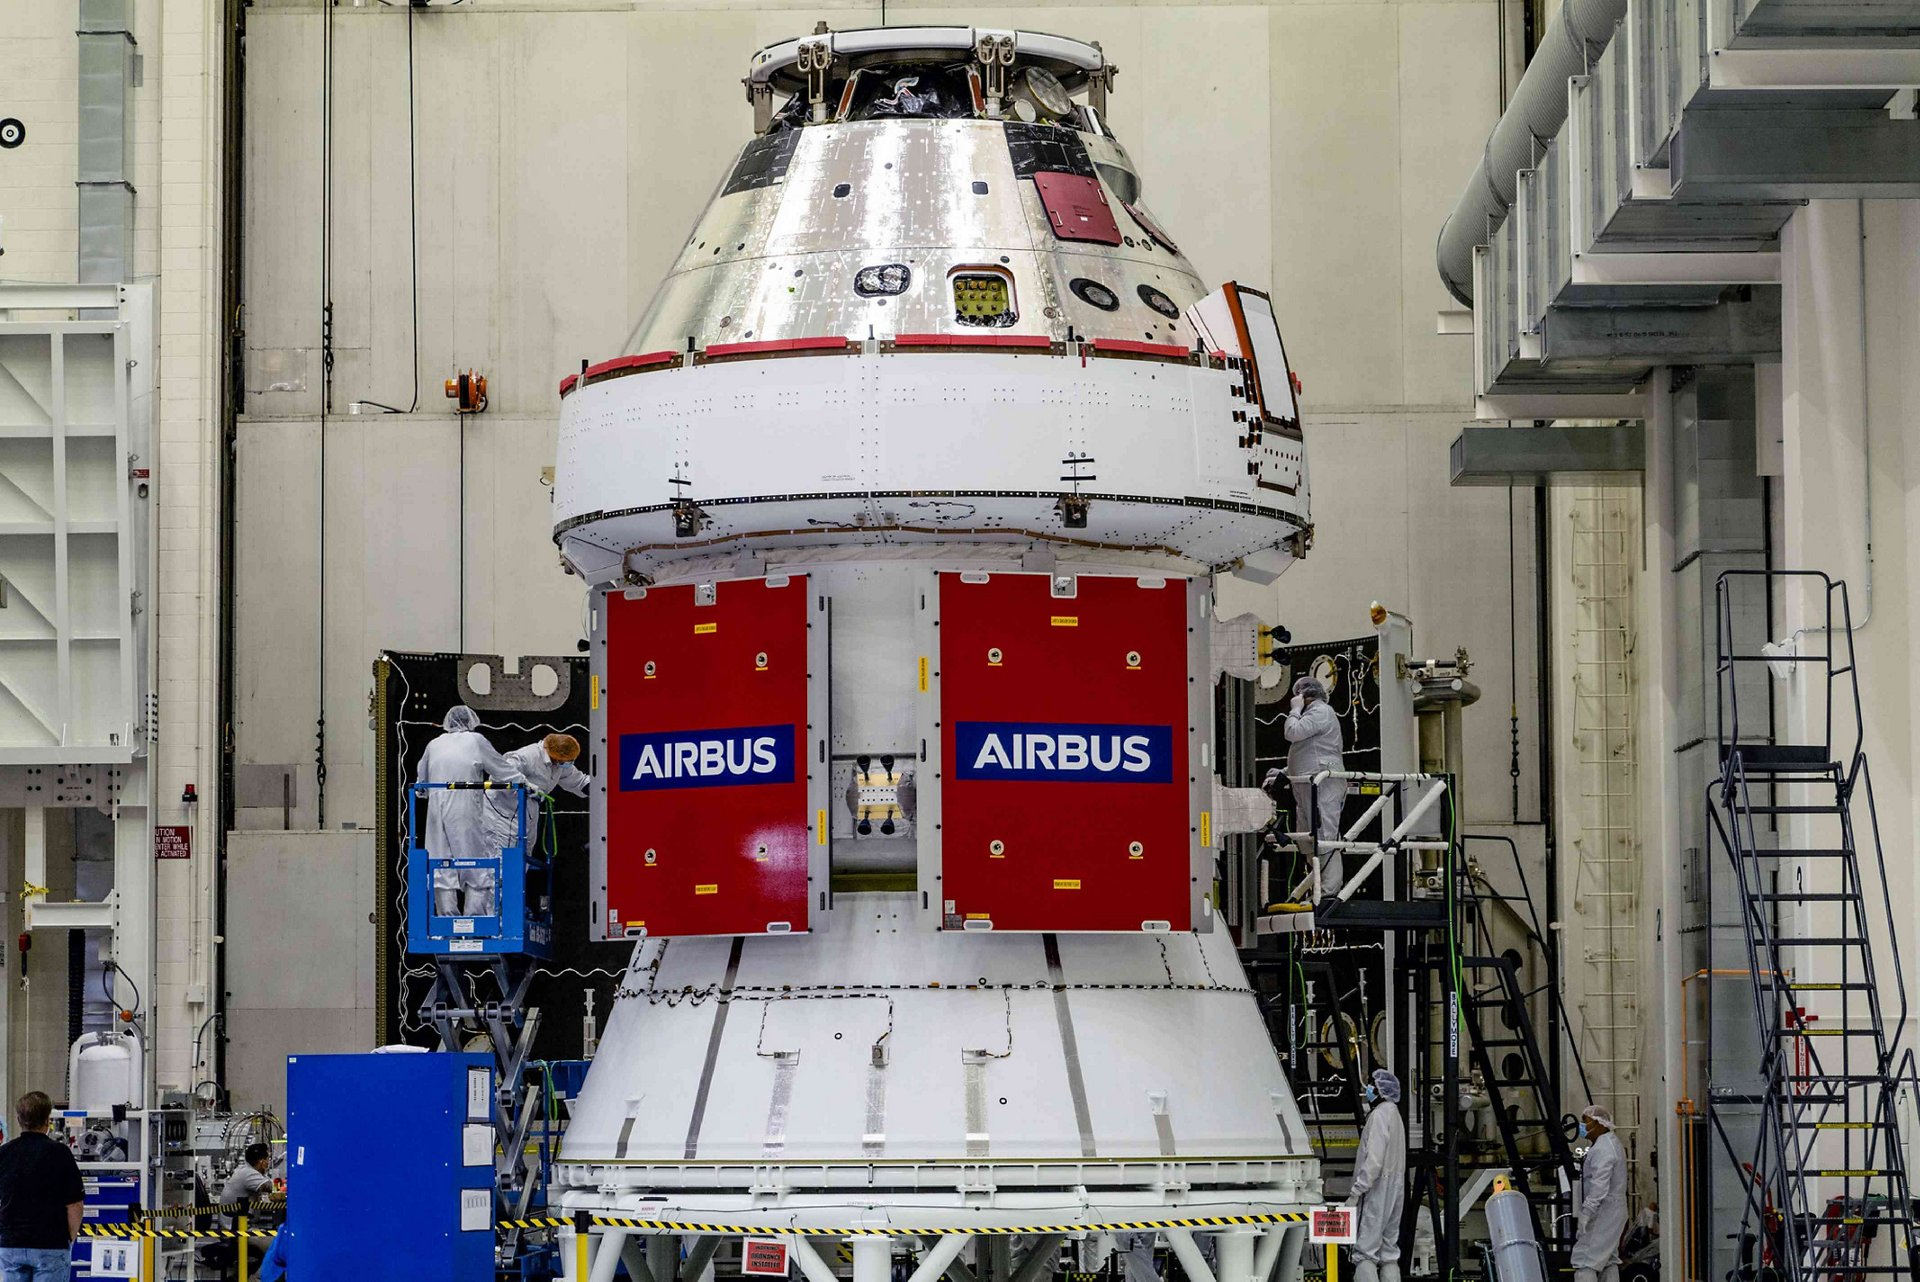 NASA Orion spacecraft with the first European Service Module (ESM-1)  integrated at NASA.